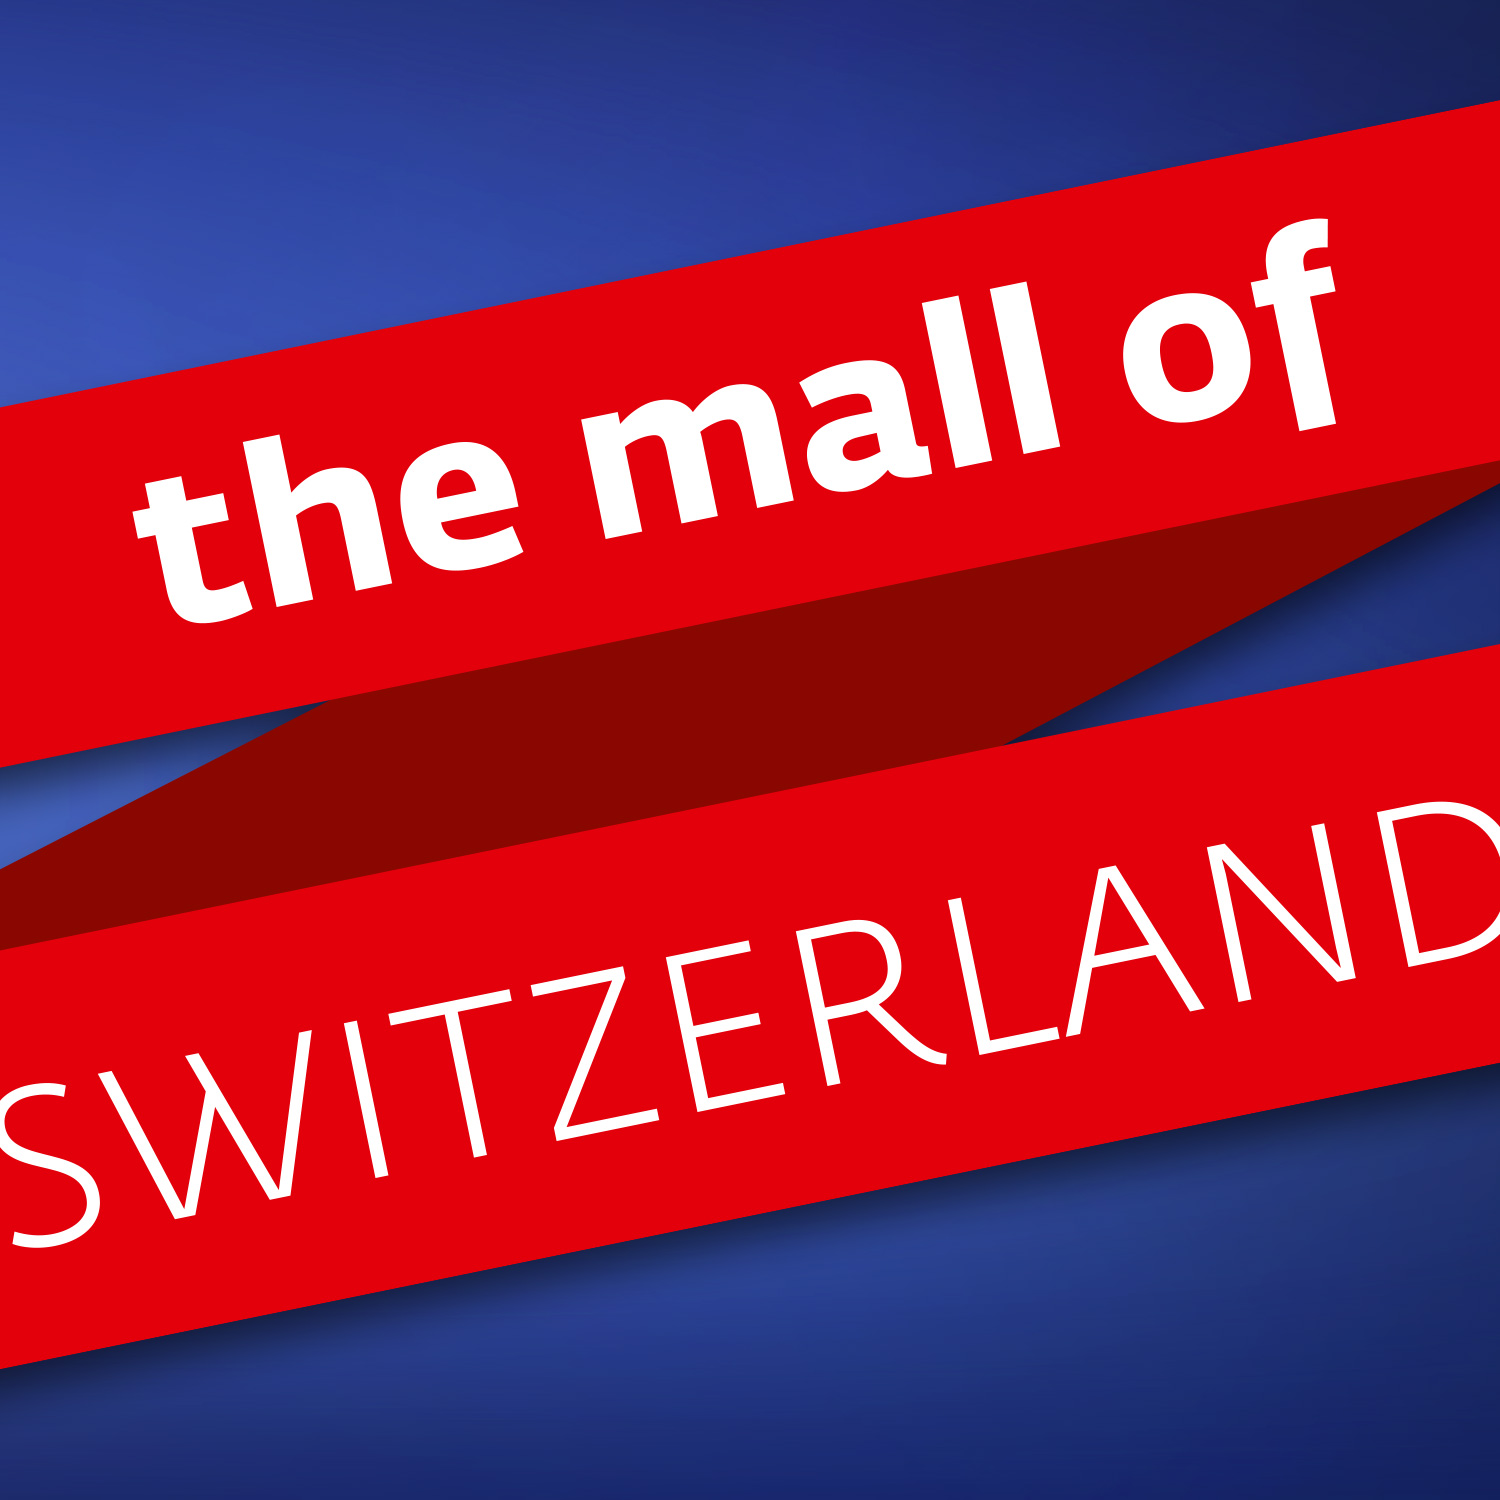 Thumbnail: Mall of Switzerland Key Visuals